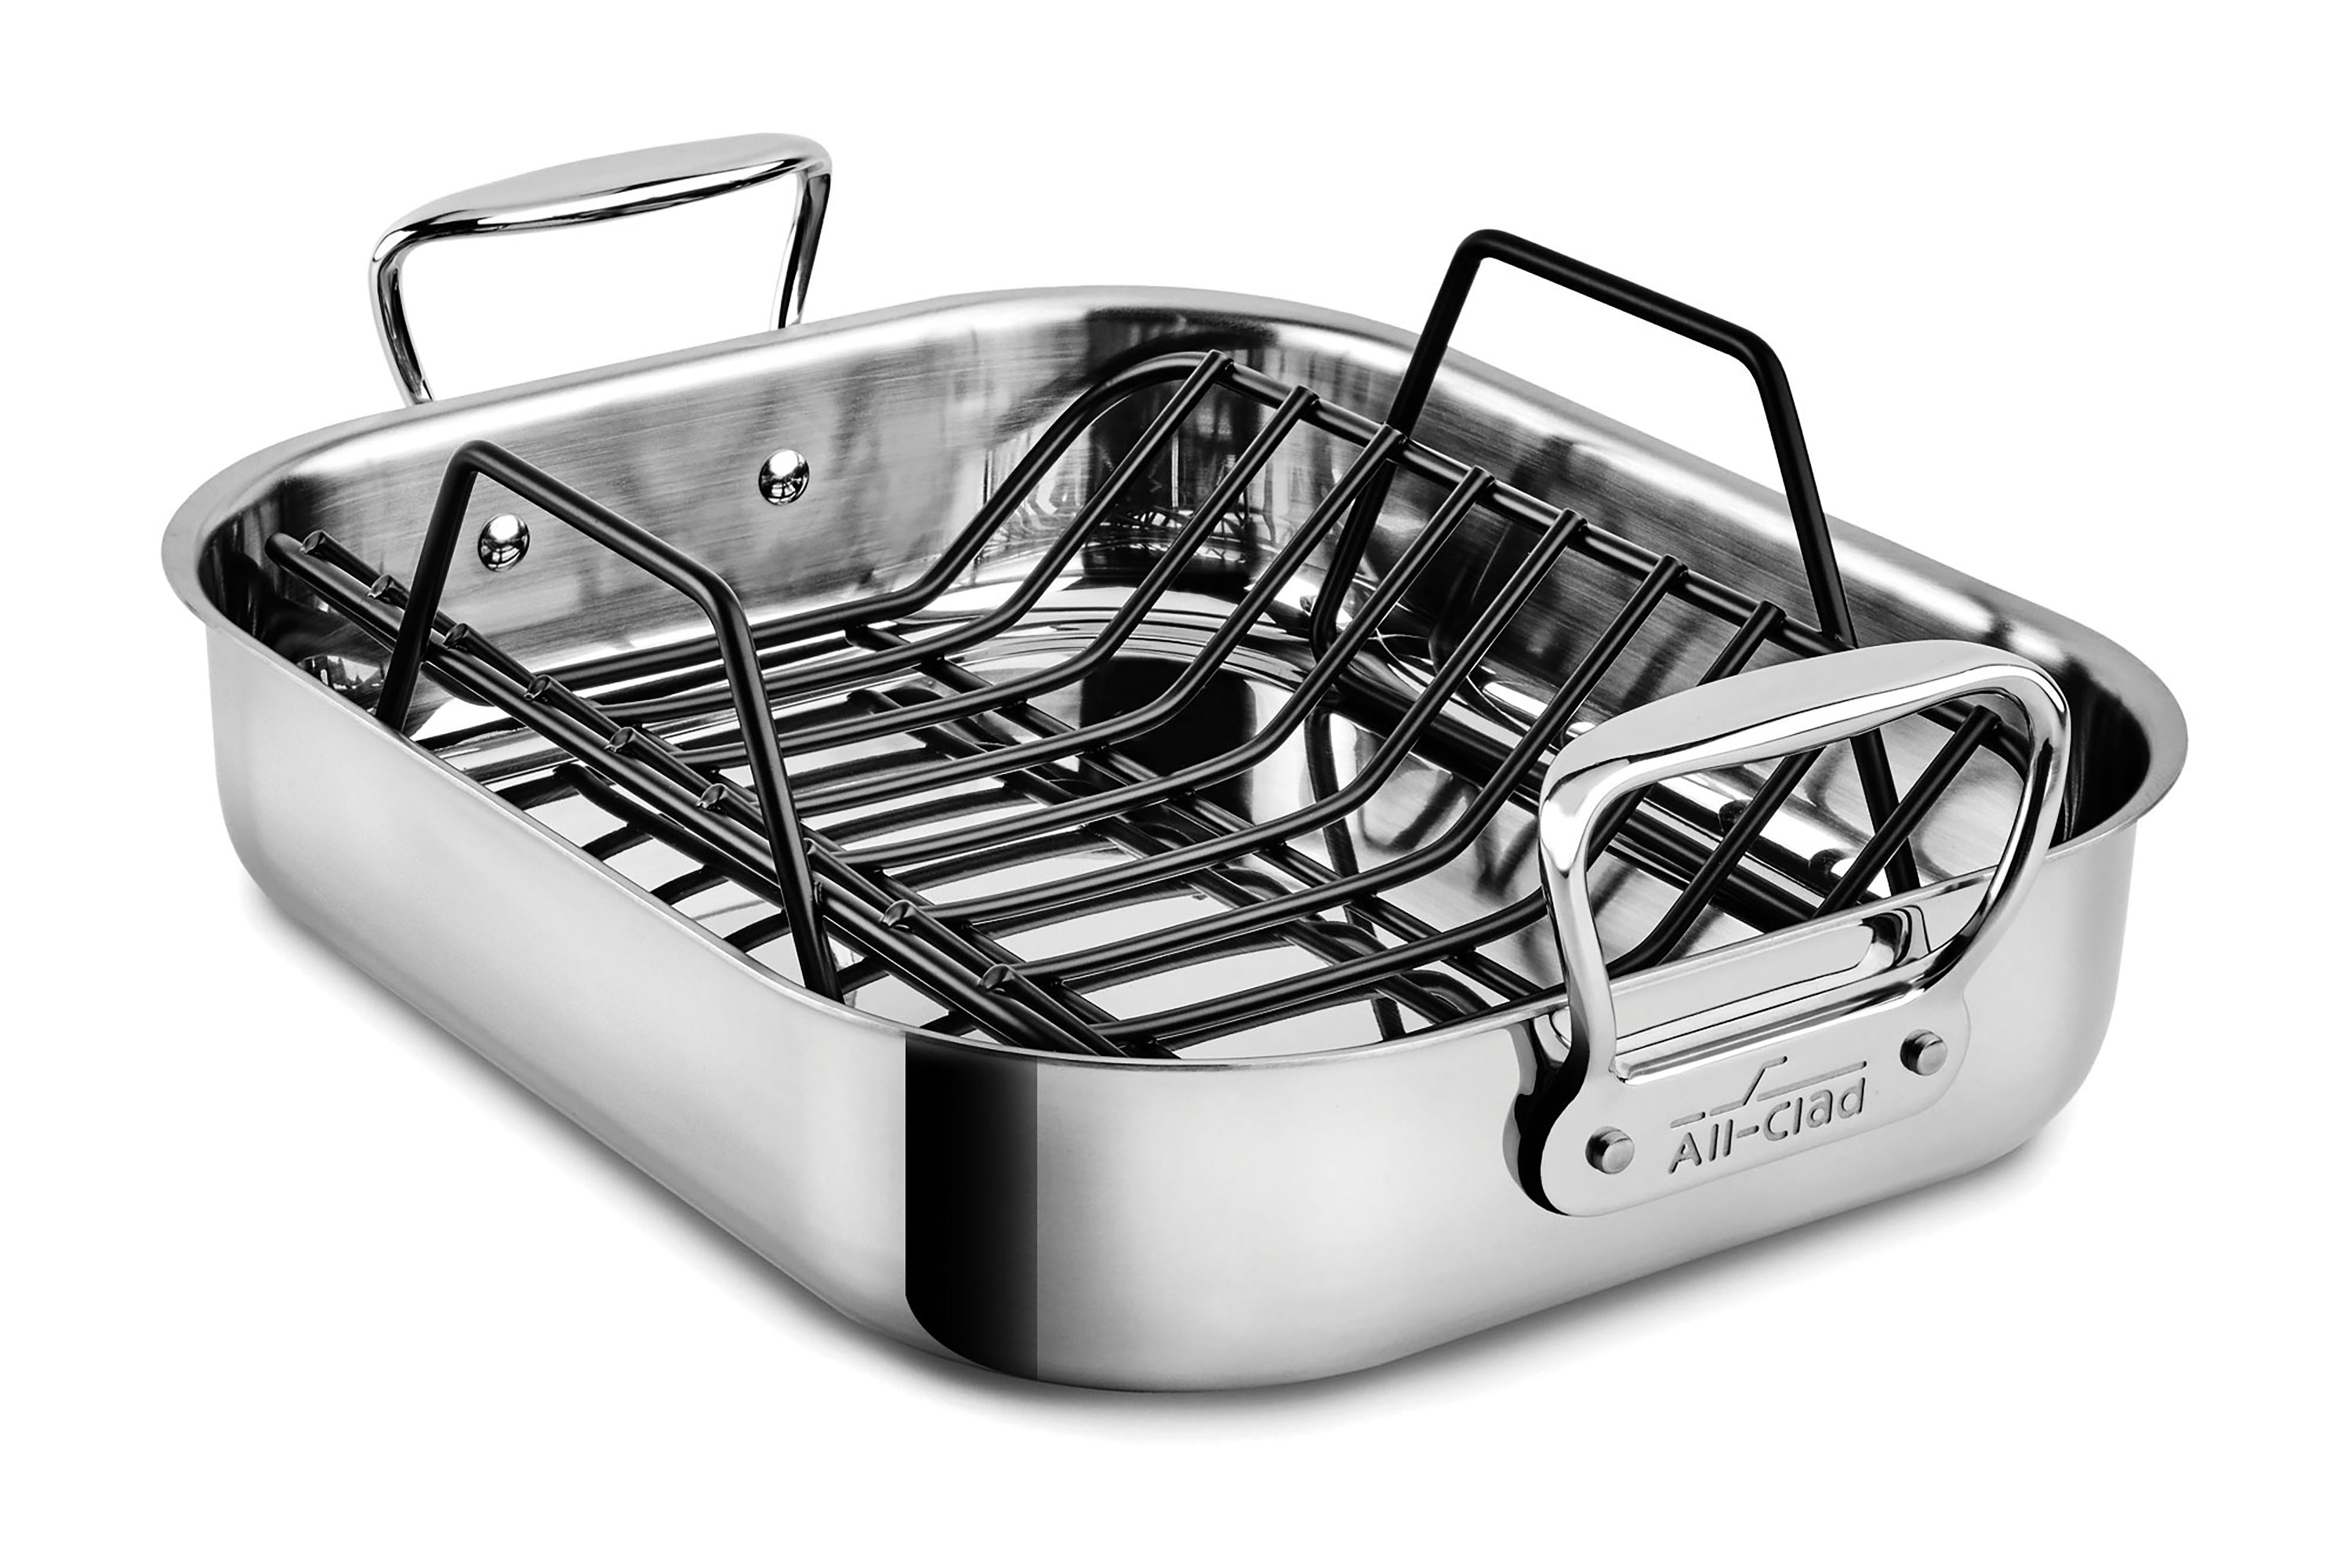 All Clad Stainless Roasting Pan With Rack 14 X 11 Inch